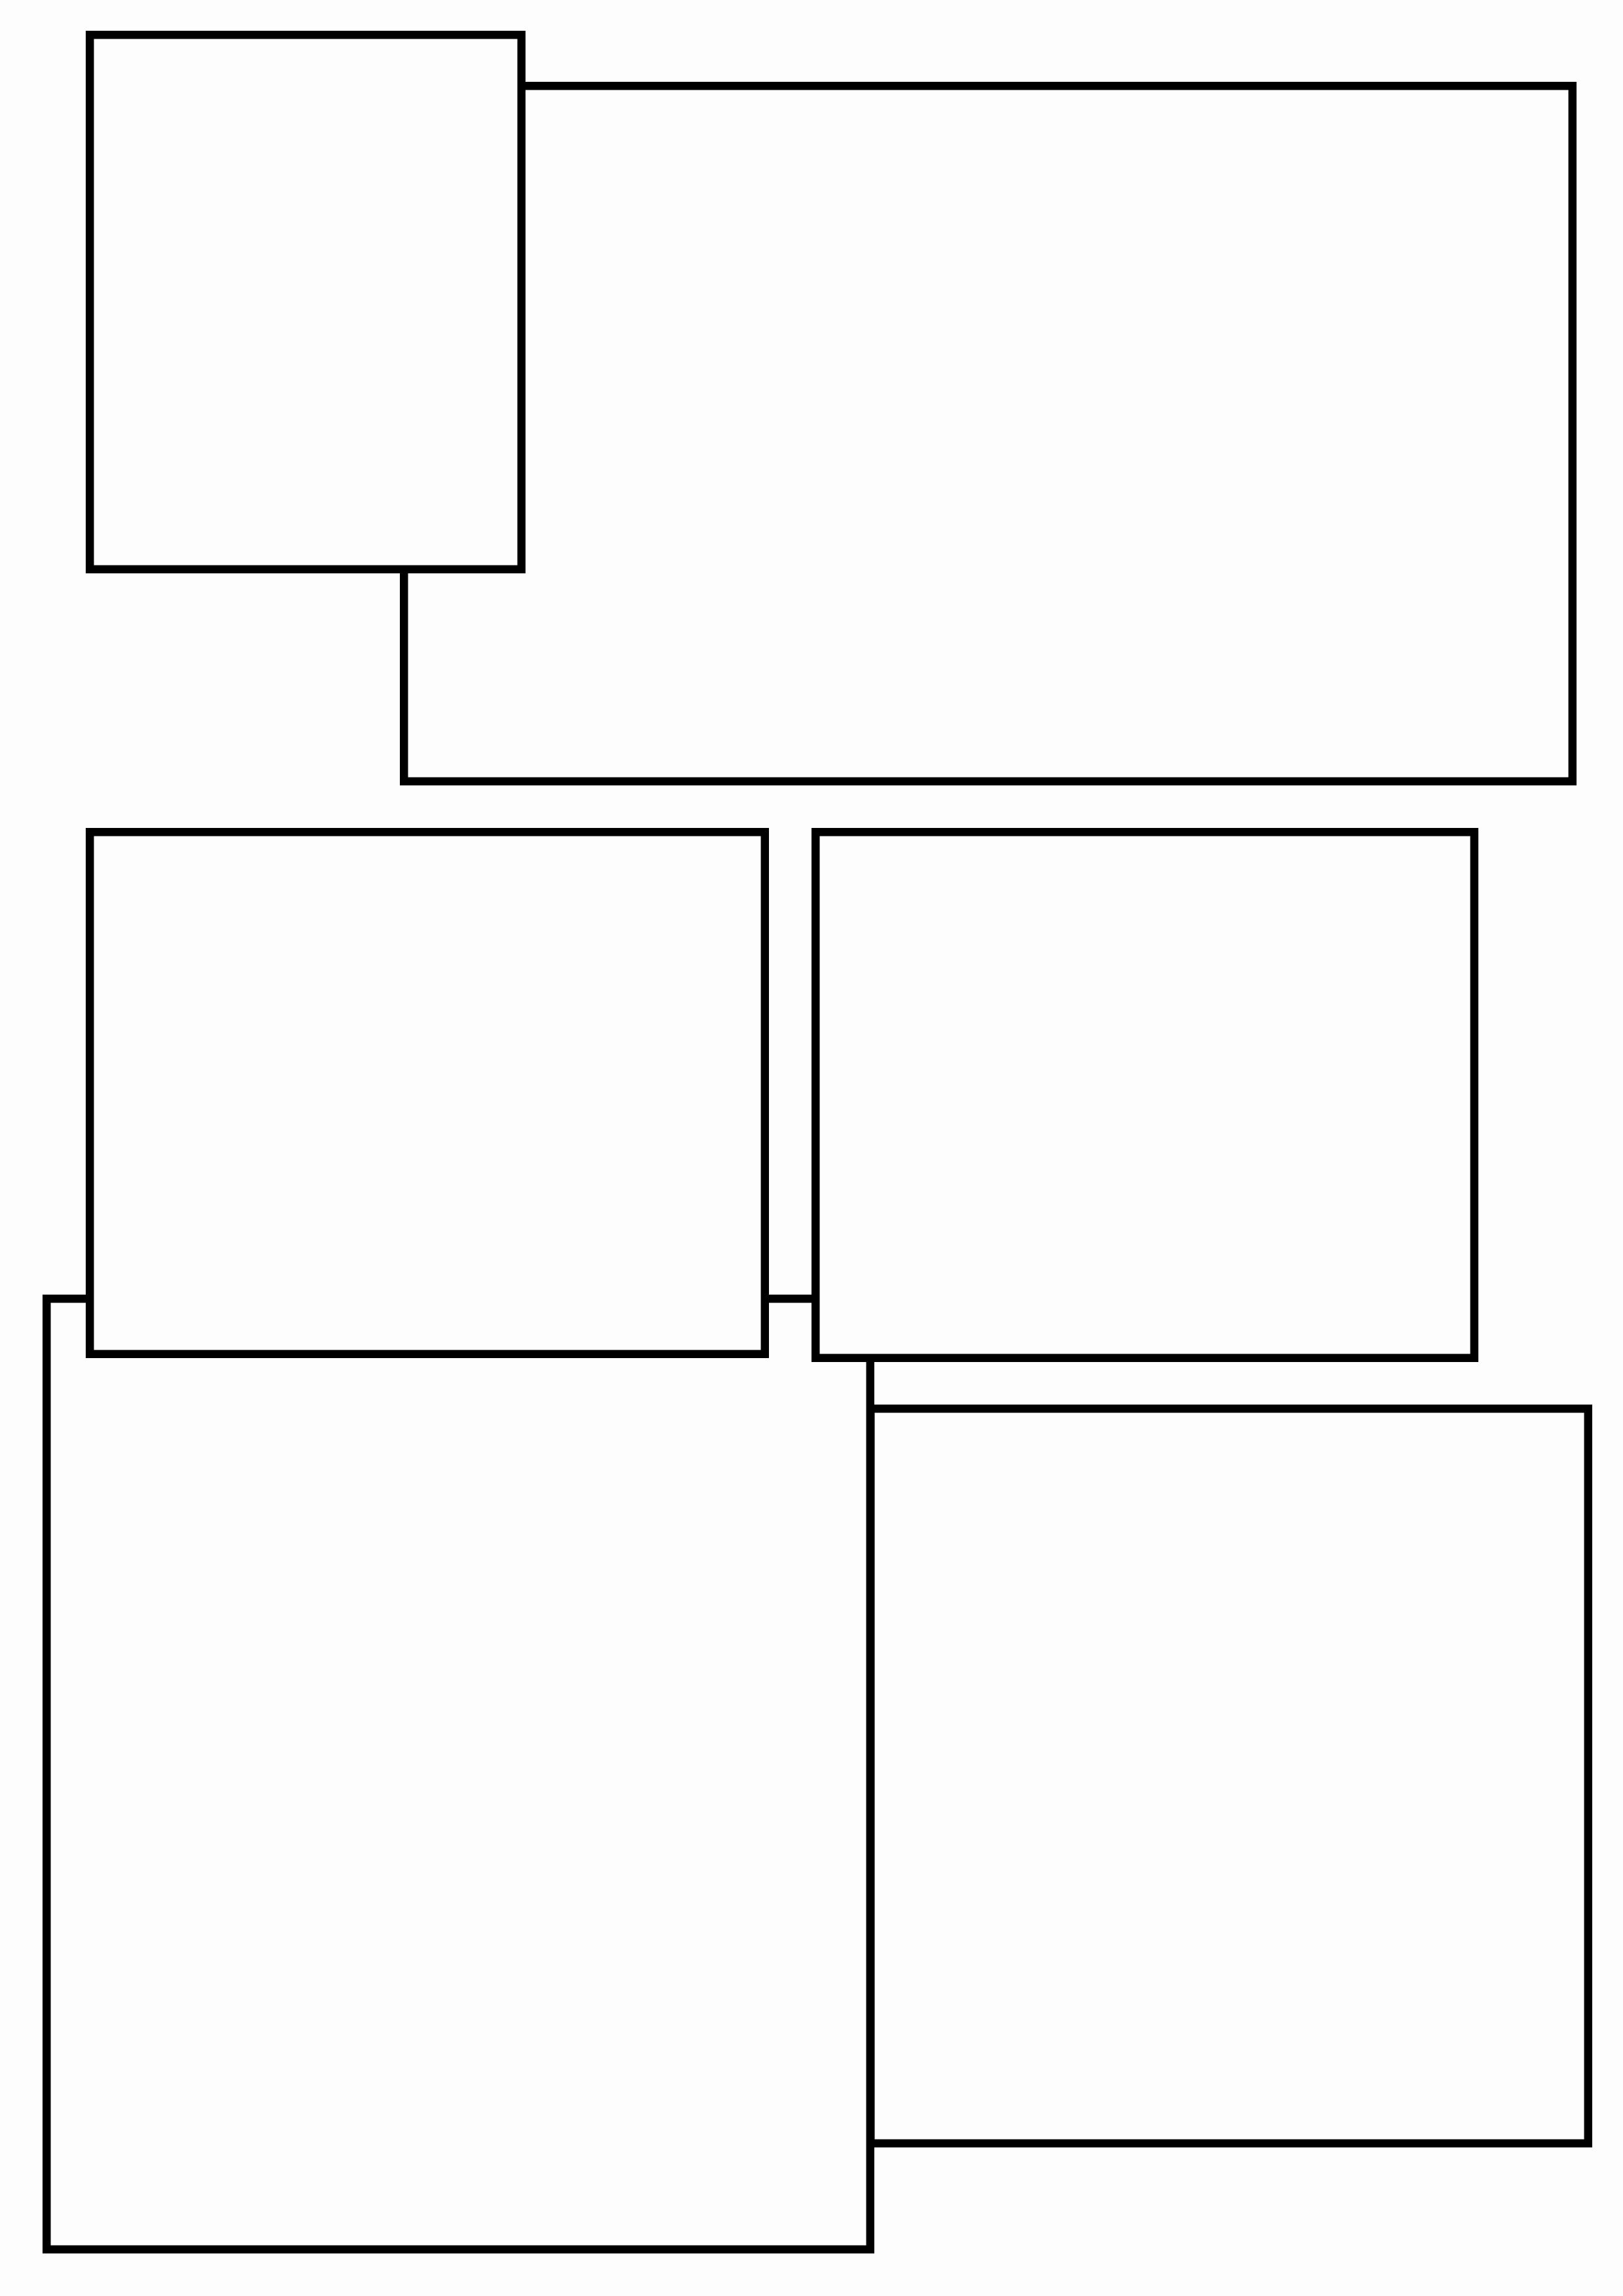 Comic Strip Template Inspirational Setting Out Layouts for the Ic Strip